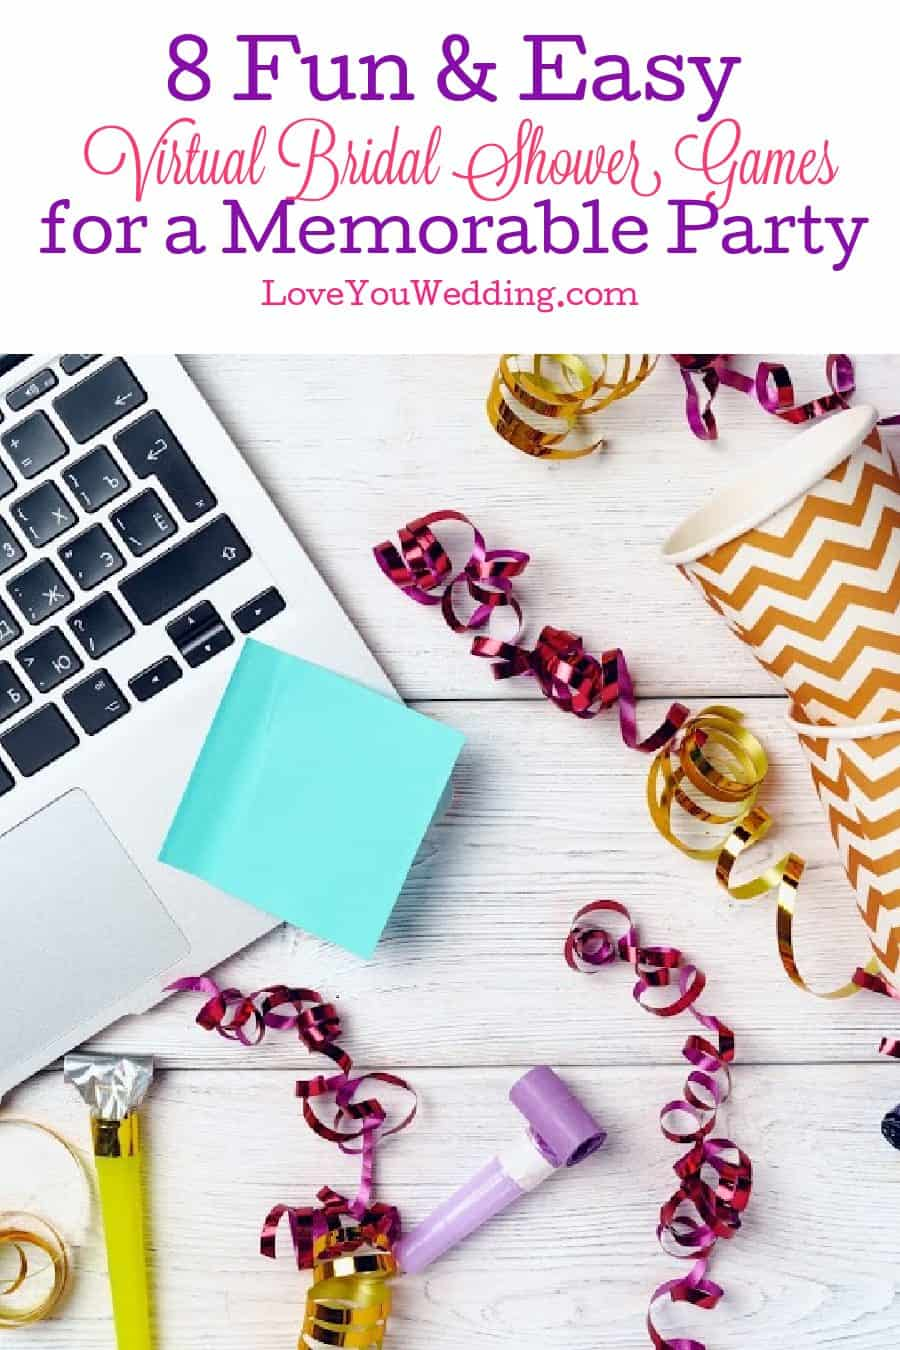 Have you been searching for fun virtual bridal shower games to play with no effort? Here are 8 ideas you'll love.